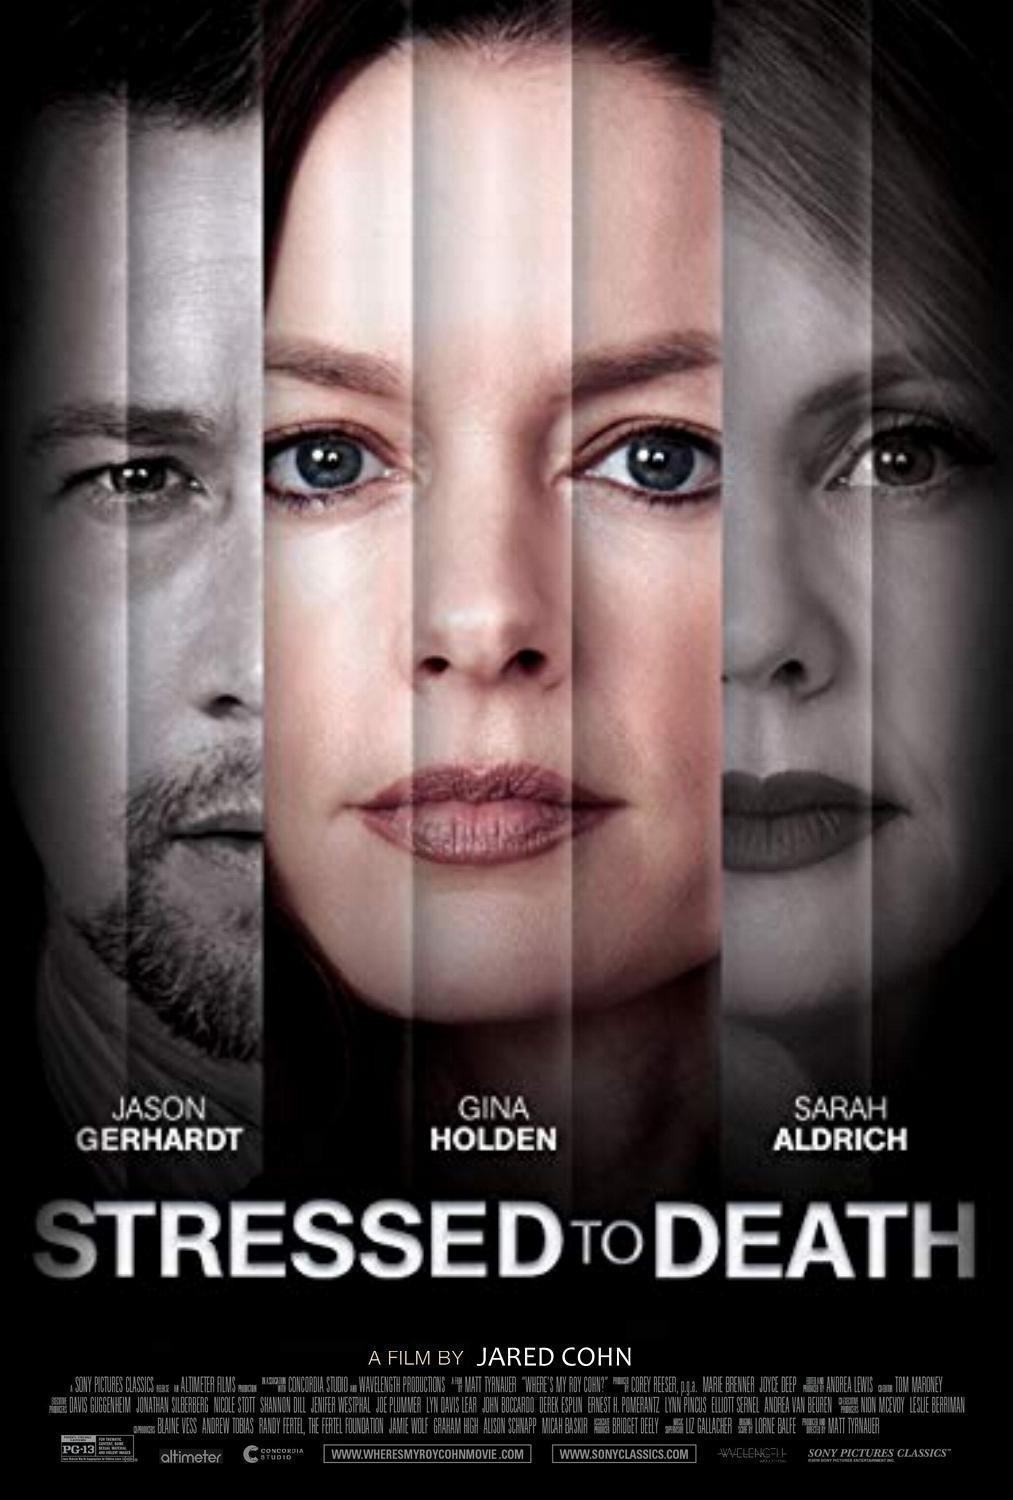 telecharger Stressed To Death 2019 FRENCH WEBRiP XViD-STVFRV zone telechargement